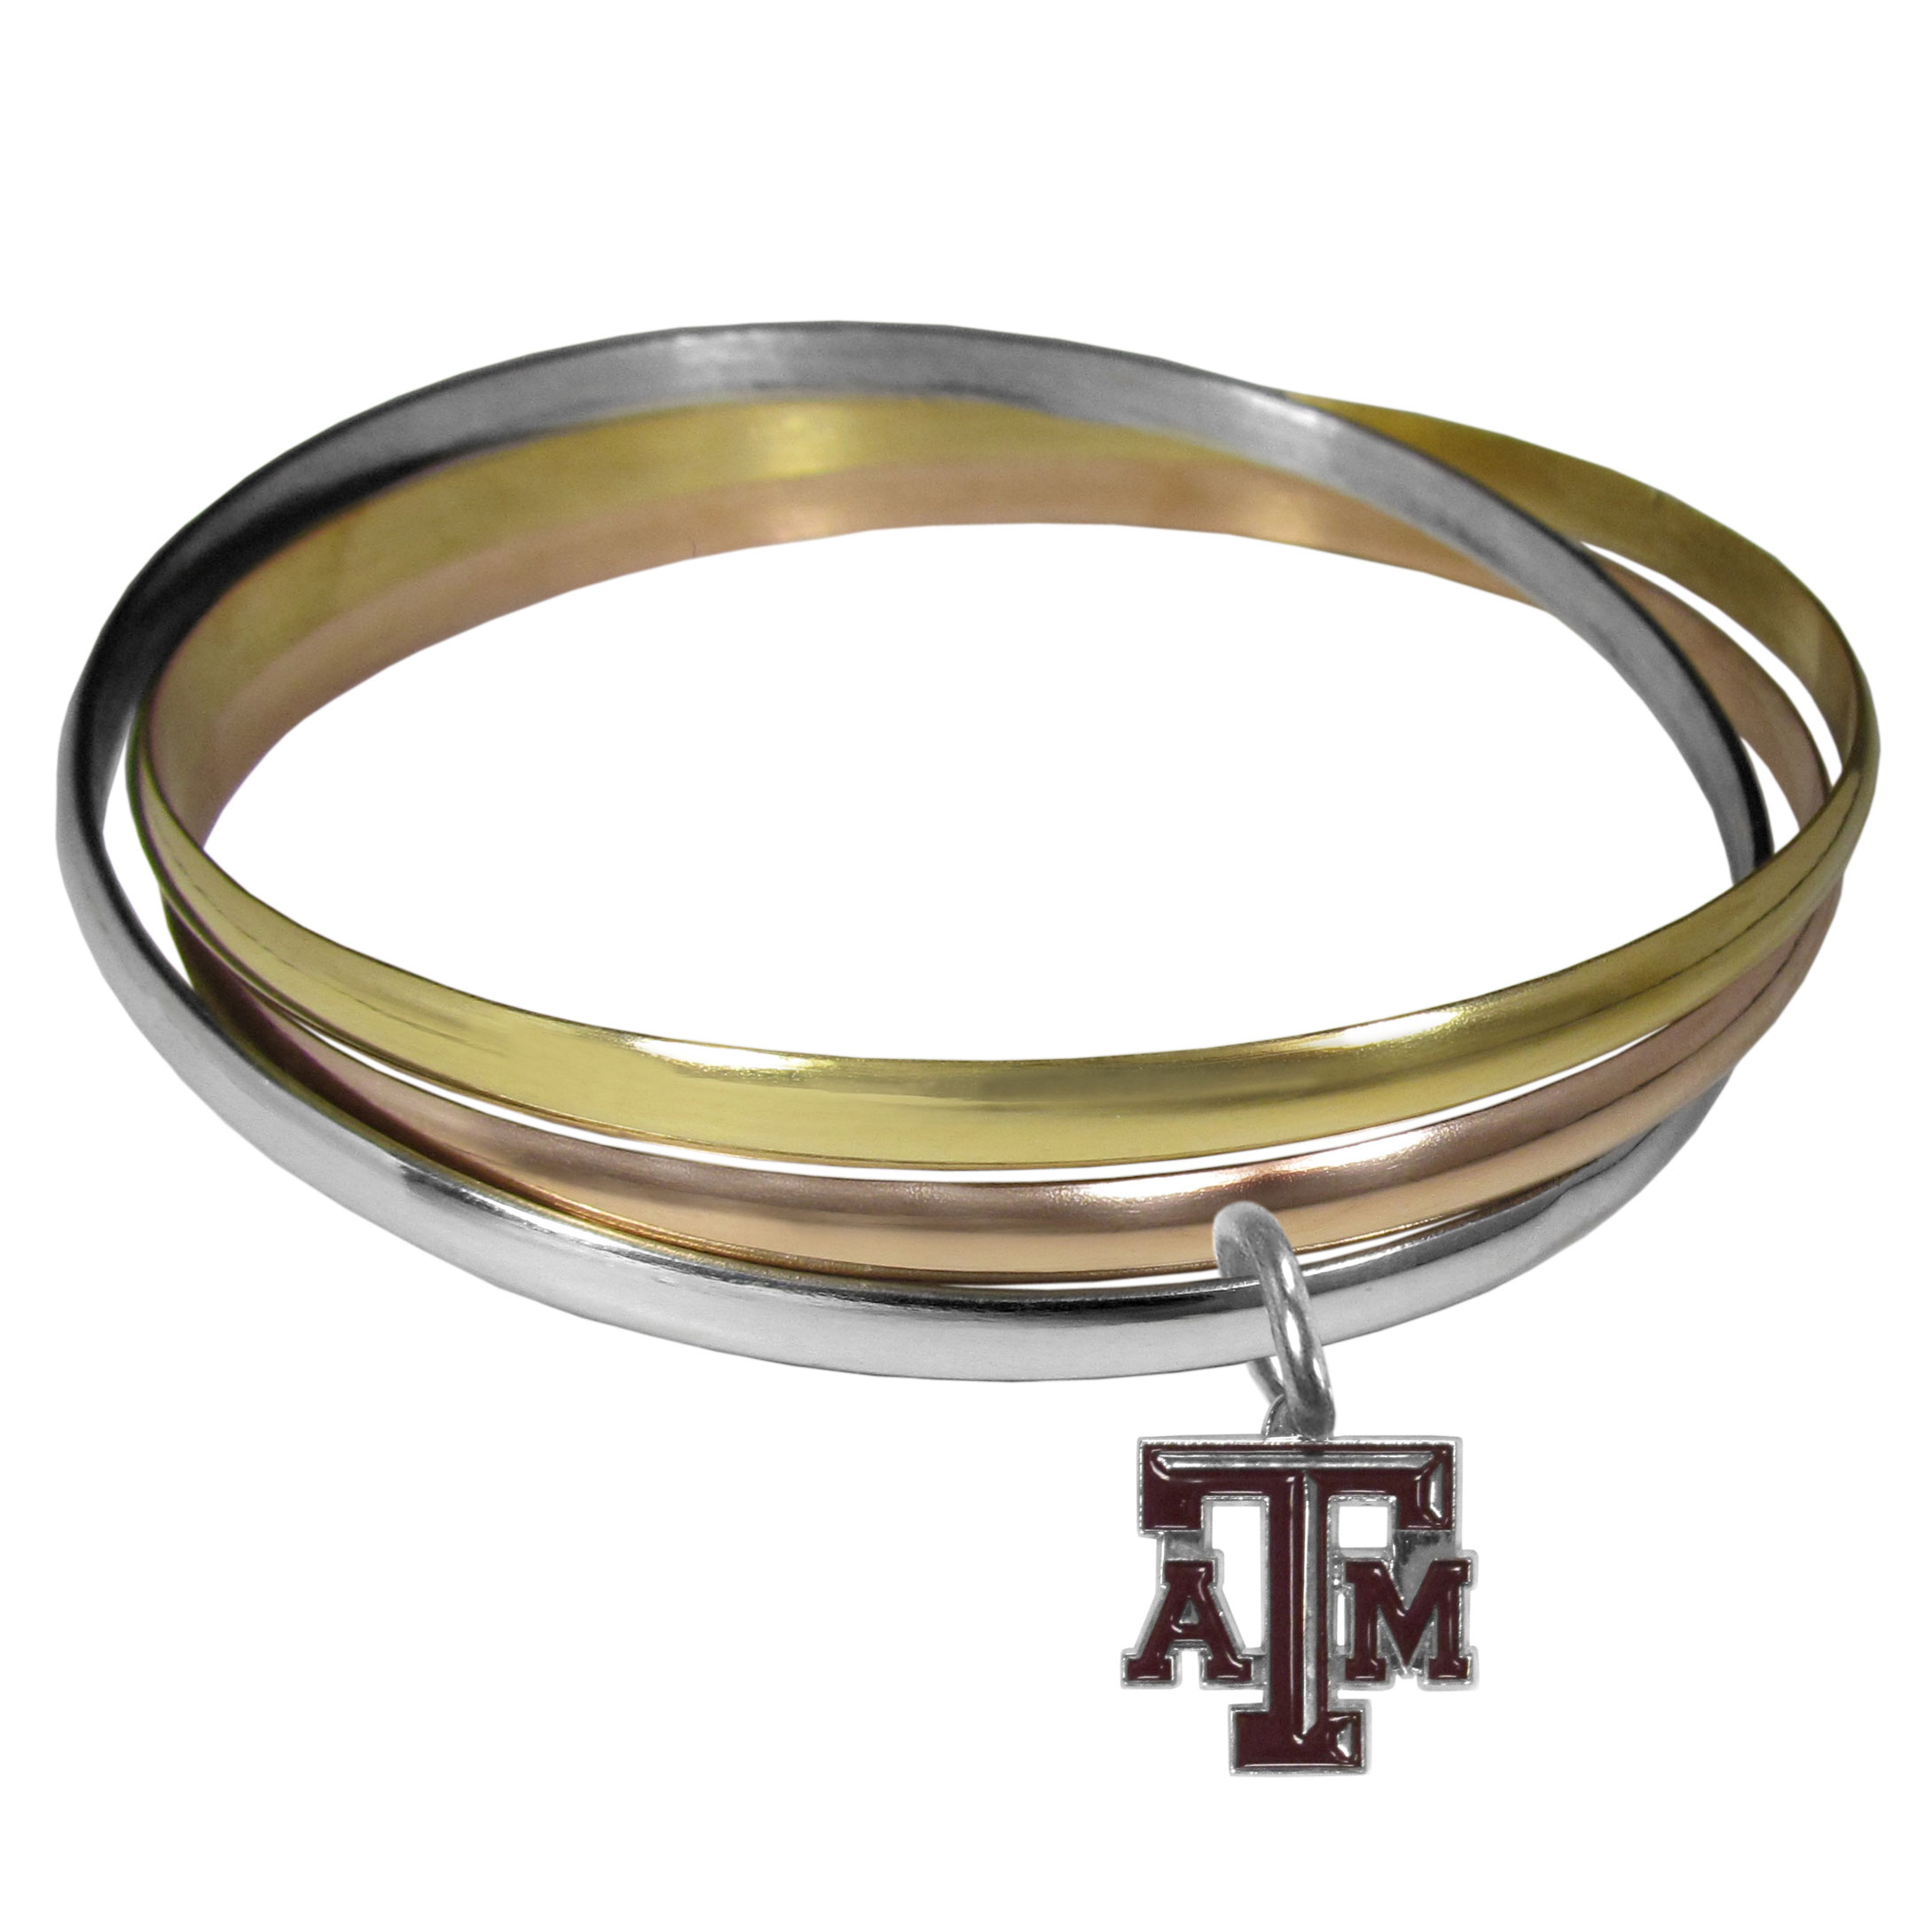 Texas A and M Aggies Tri-color Bangle Bracelet - These beautiful bangles come in a interlocking style and feature a fully cast Texas A & M Aggies charm with enameled team colors. The bracelet has a silver toned bangle, gold tone bangle and brass toned bangle.